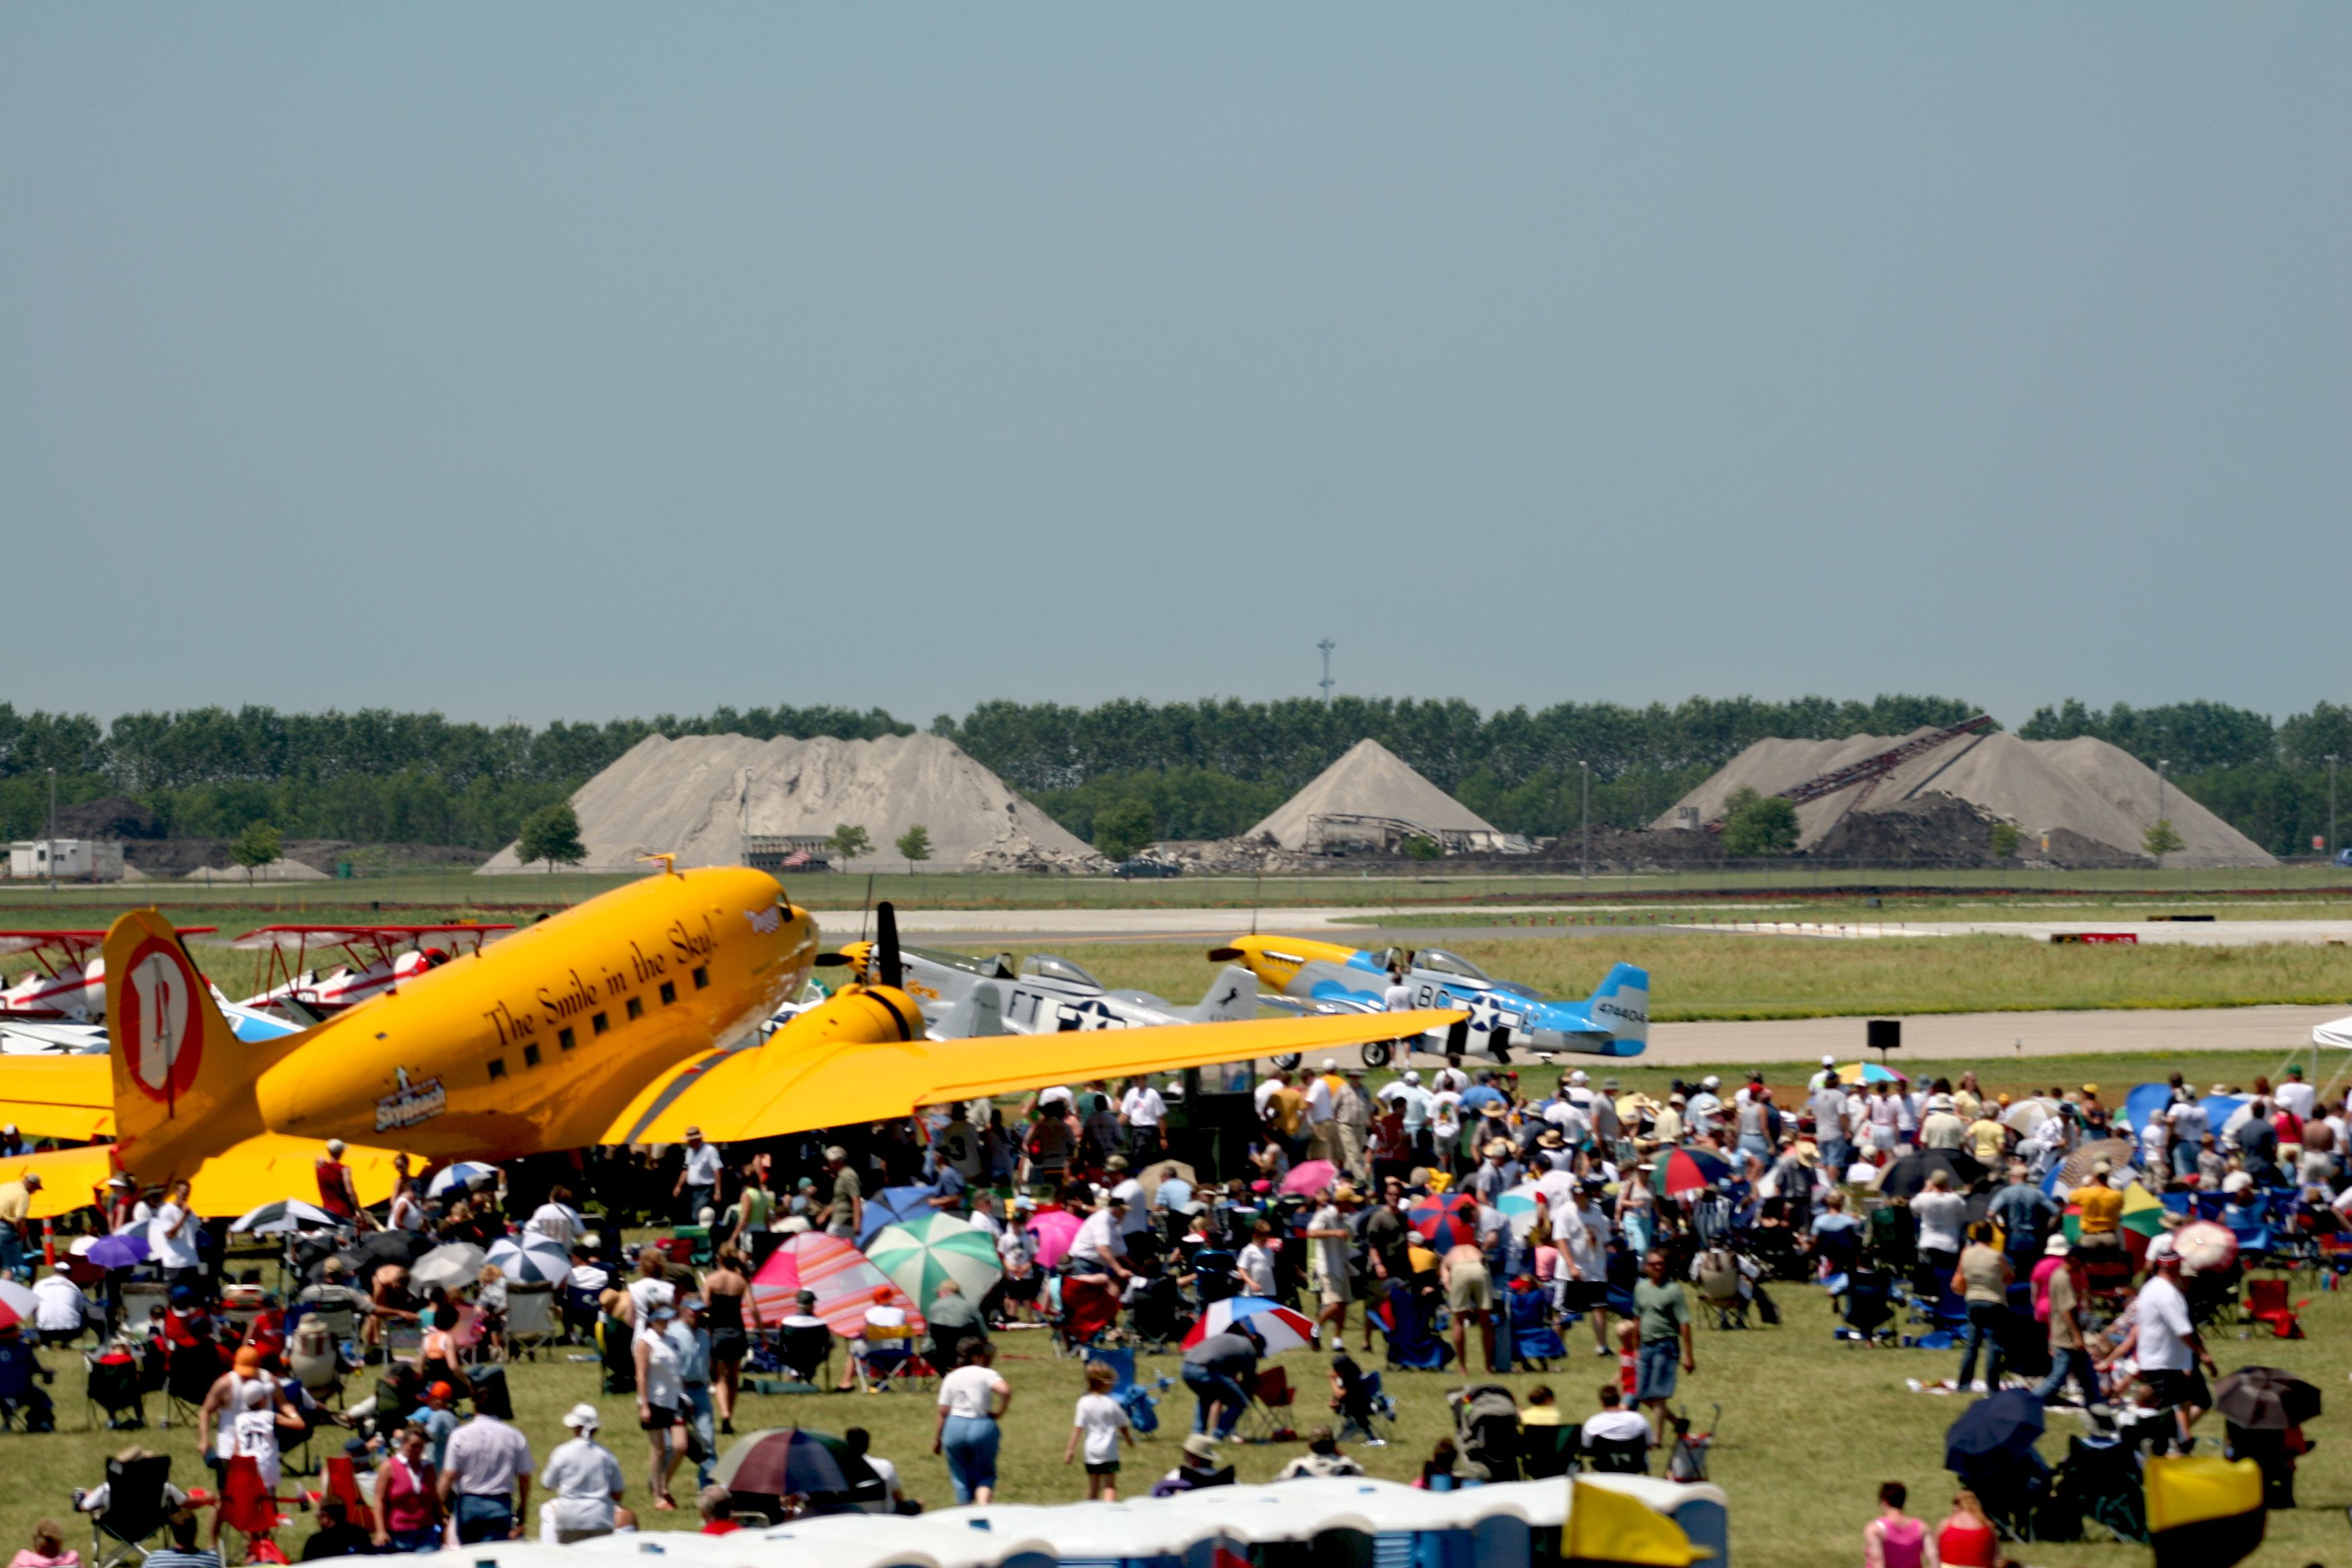 Duggy aka The Smile in the Sky at the #Fargo AirSho!